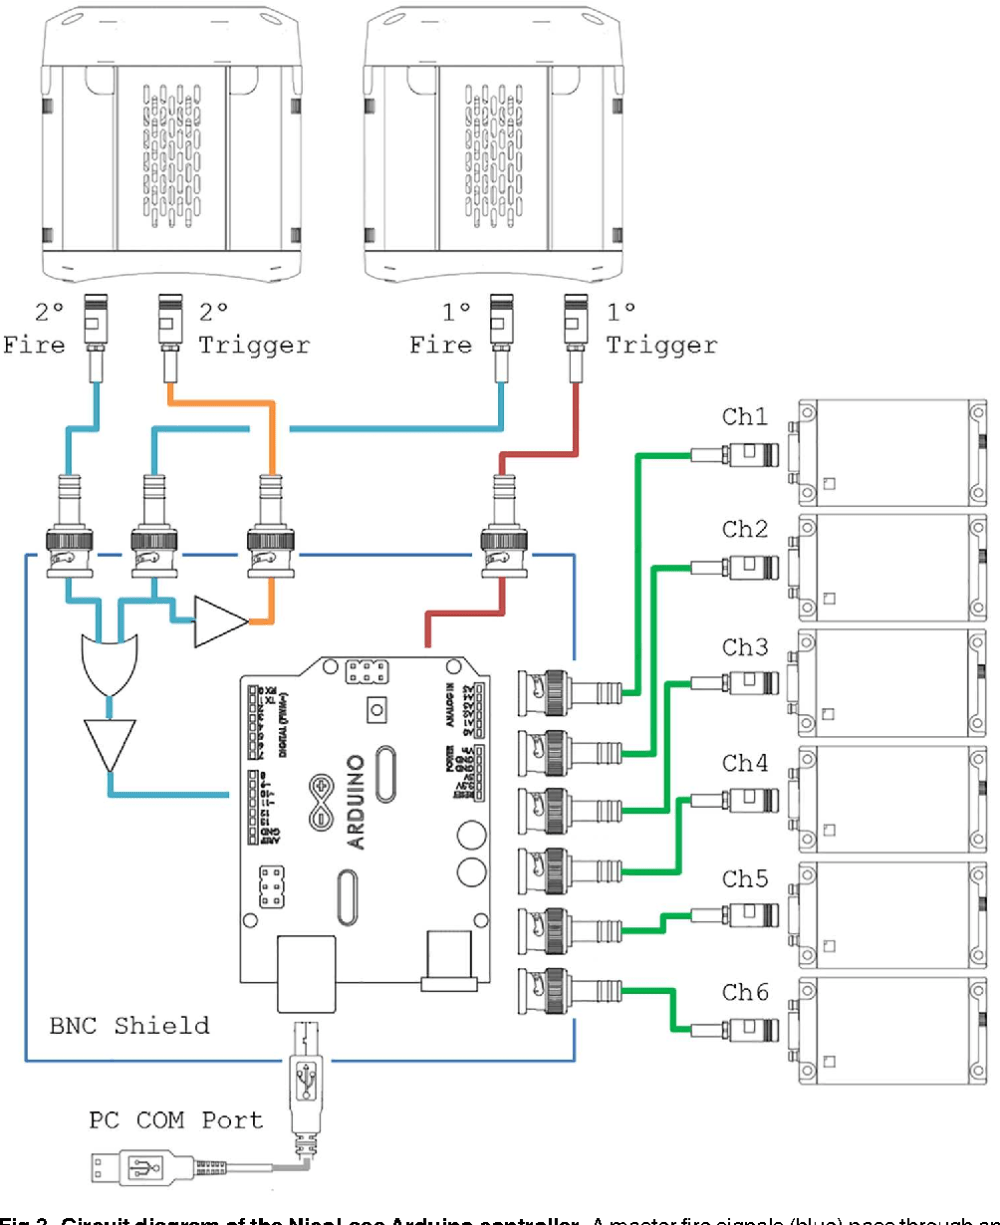 medium resolution of circuit diagram of the nicolase arduino controller a master fire signals